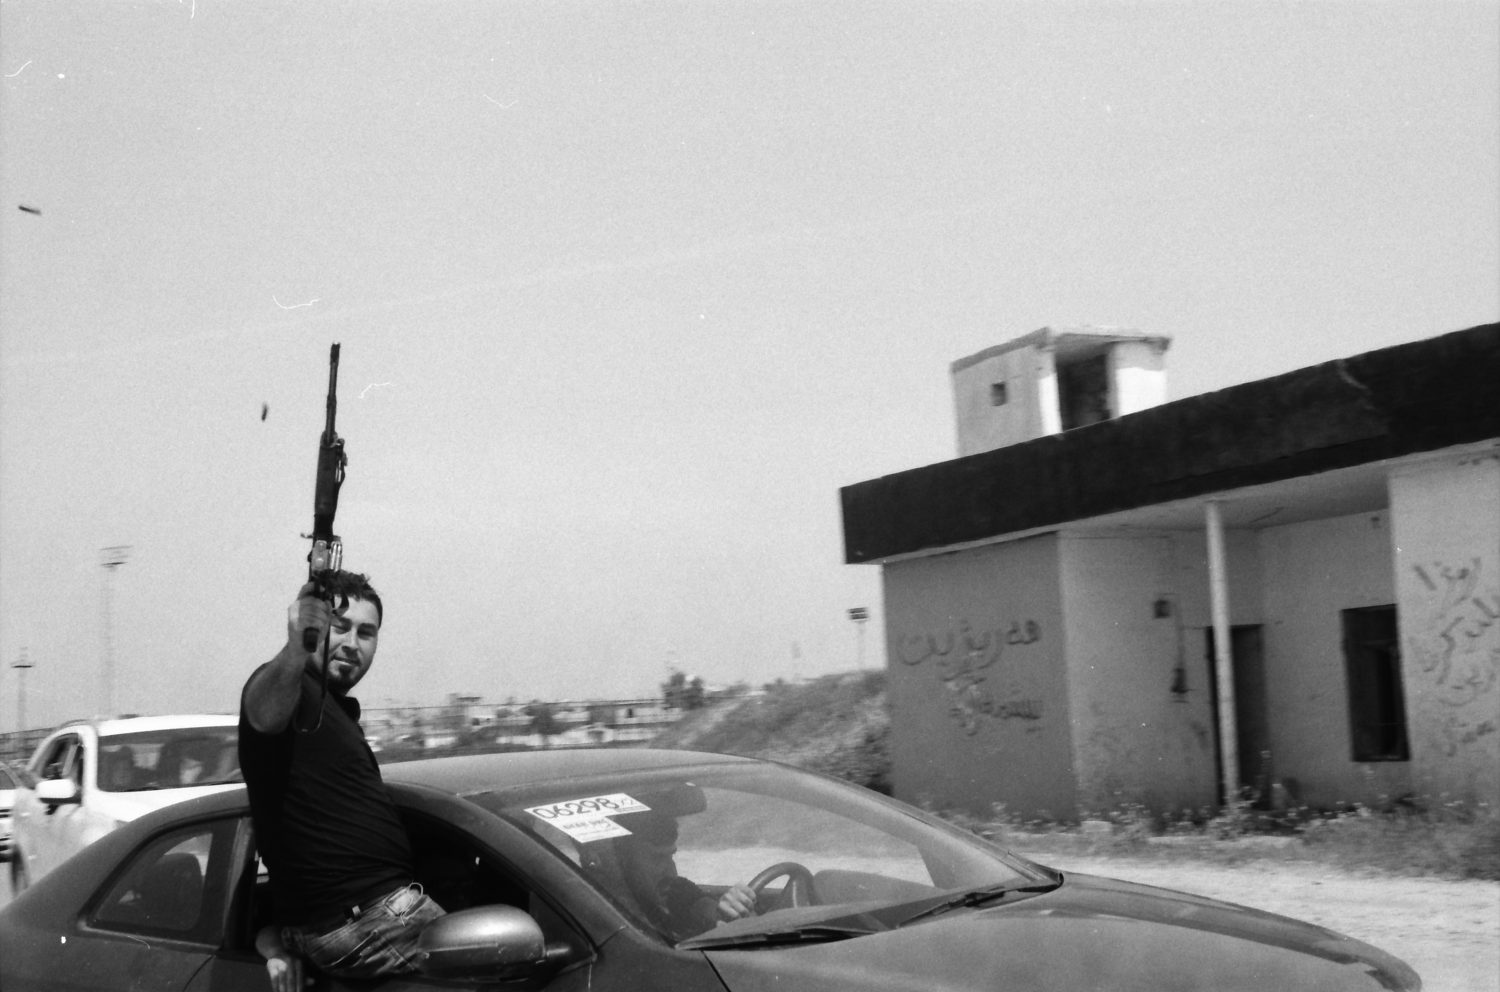 Man with gun in car